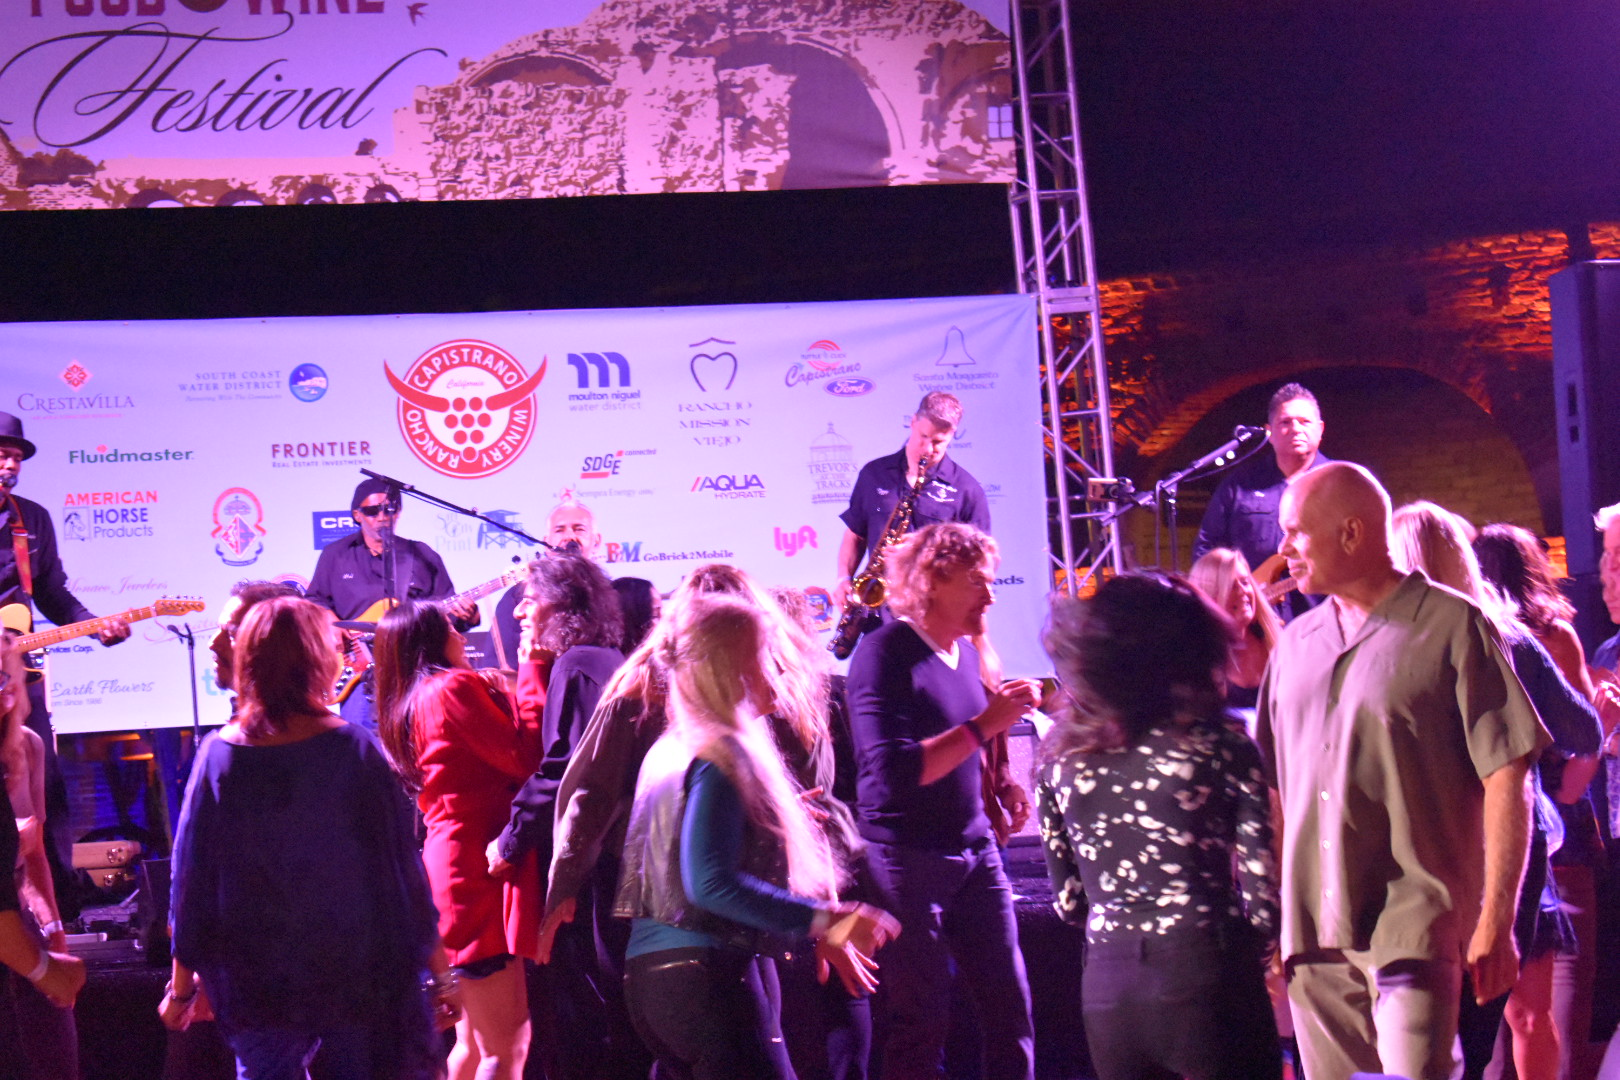 Visitors to The Vintage Food and Wine Festival dance to the music of Family style on Saturday, Oct. 6. Photo: Alex Groves